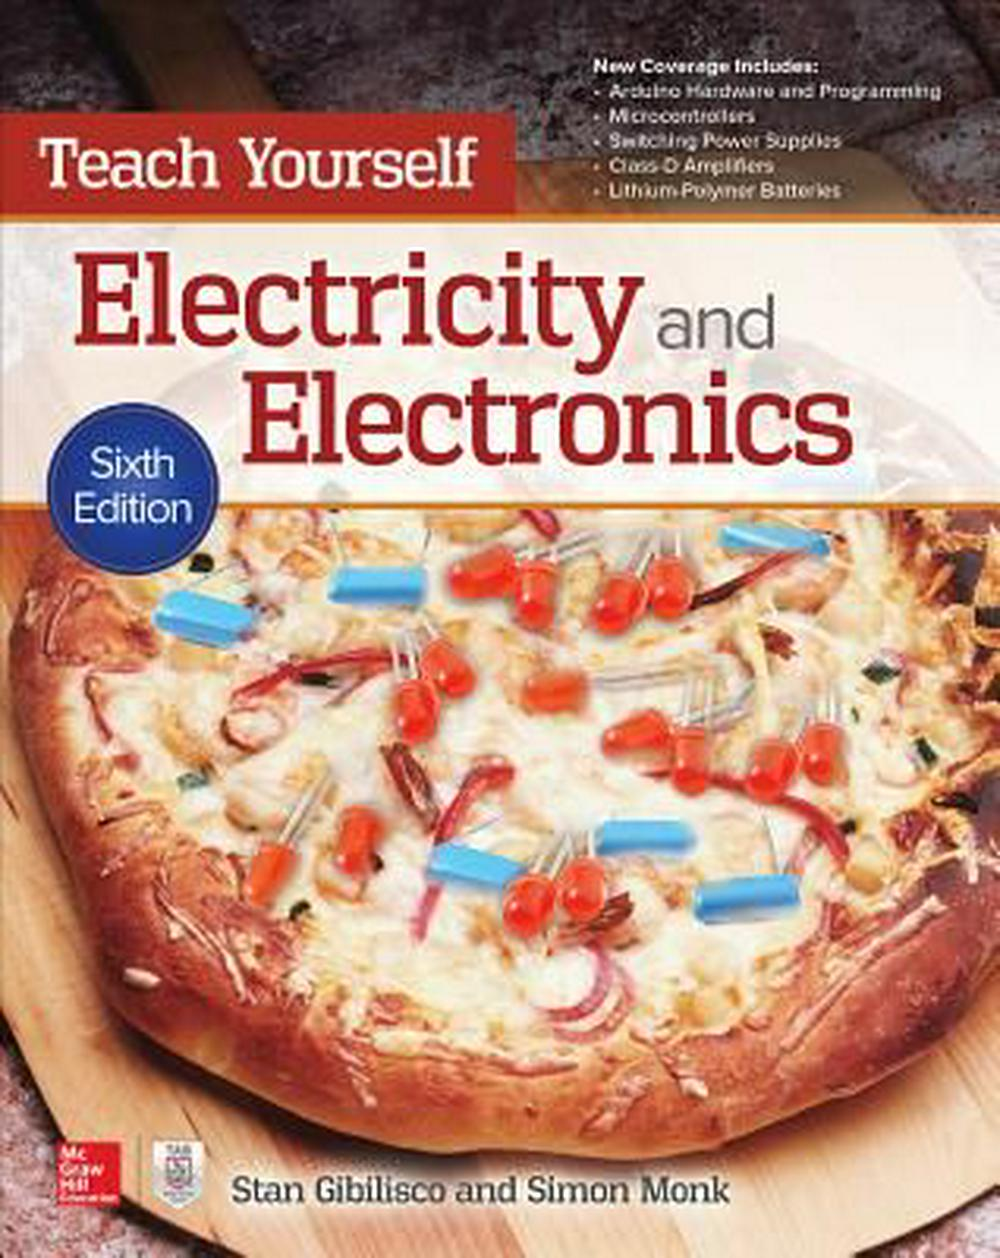 Teach Yourself Electricity and Electronics, 6th EditionTab